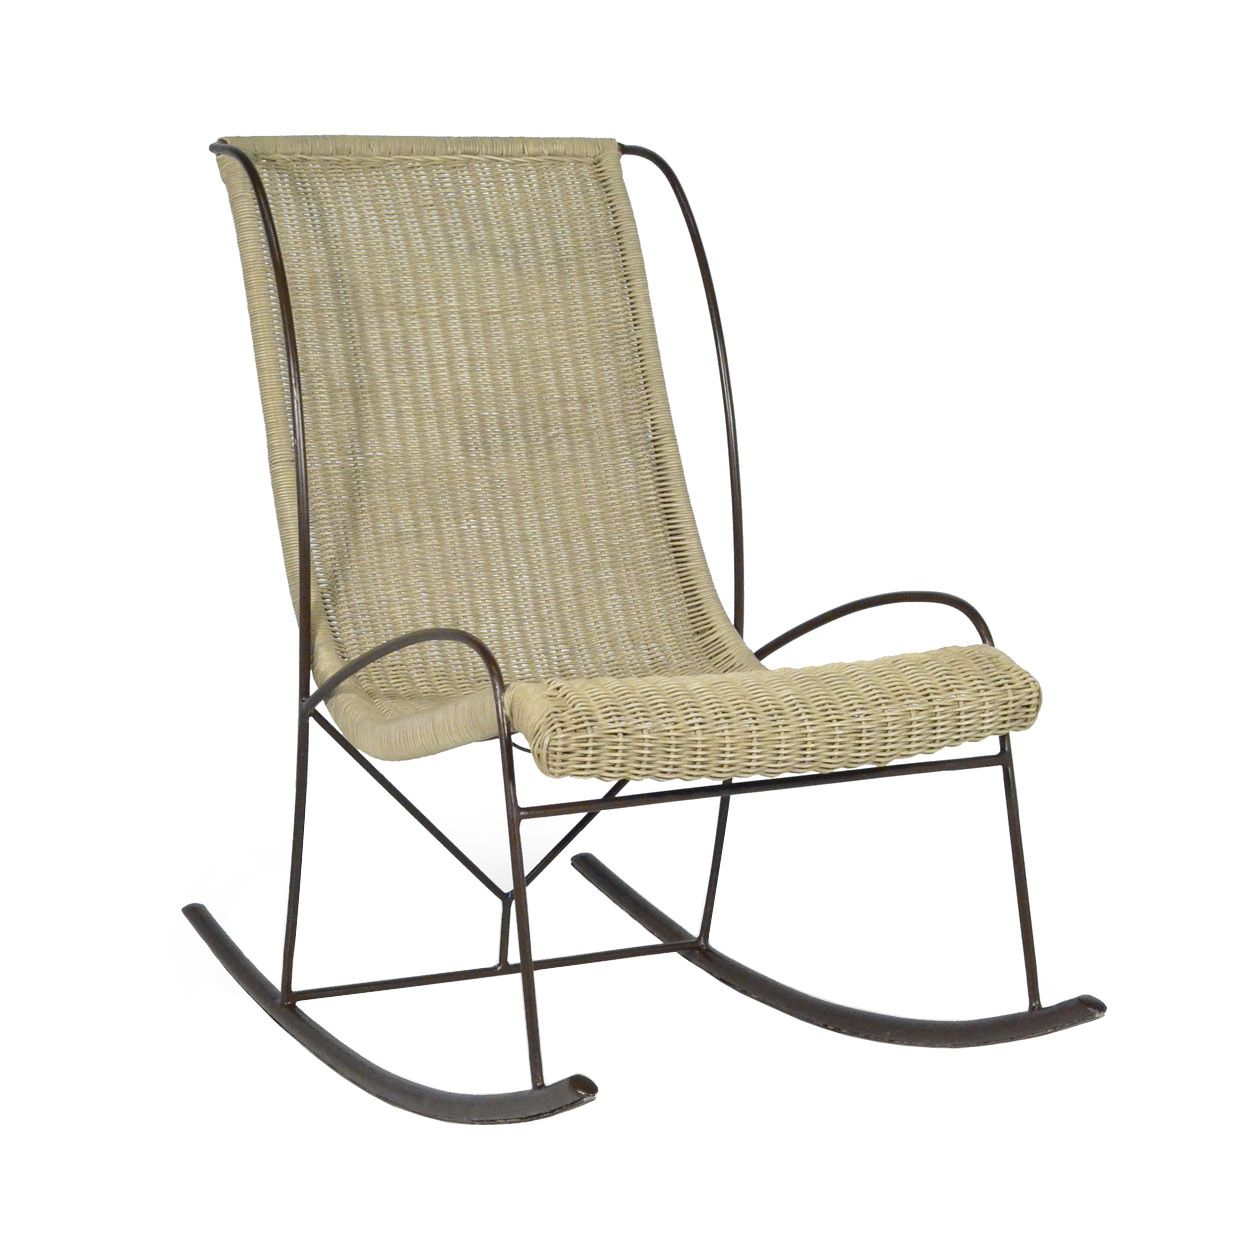 Jeffrey Alan Marks Bird Rocker Zinc_door S E A T I N G Pinterest # Muebles Jeffrey